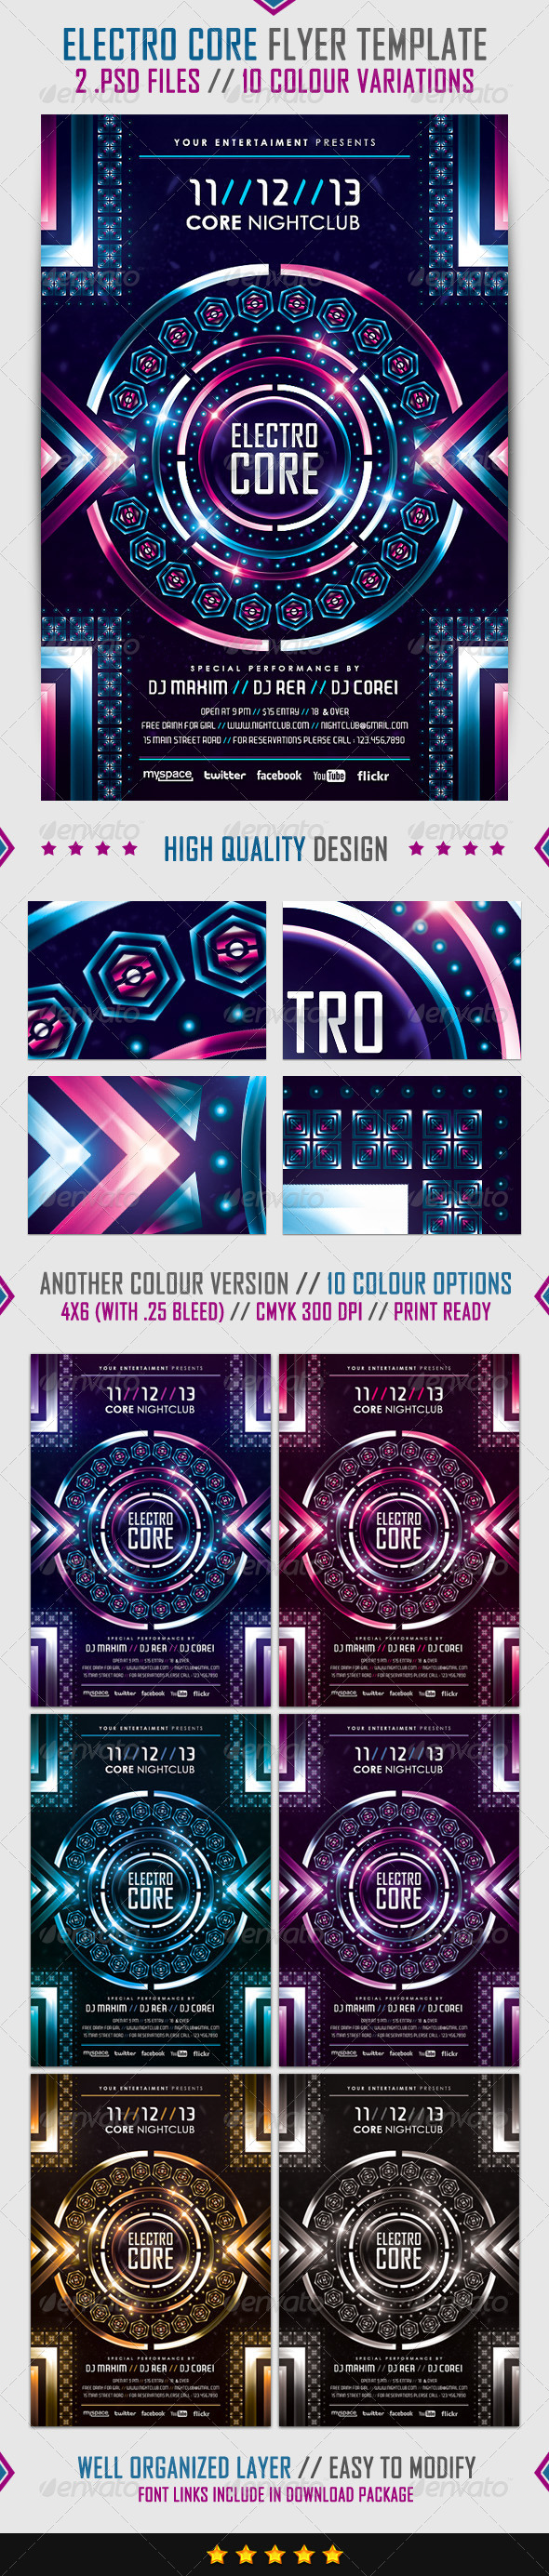 GraphicRiver Electro Core Flyer Template 4070139